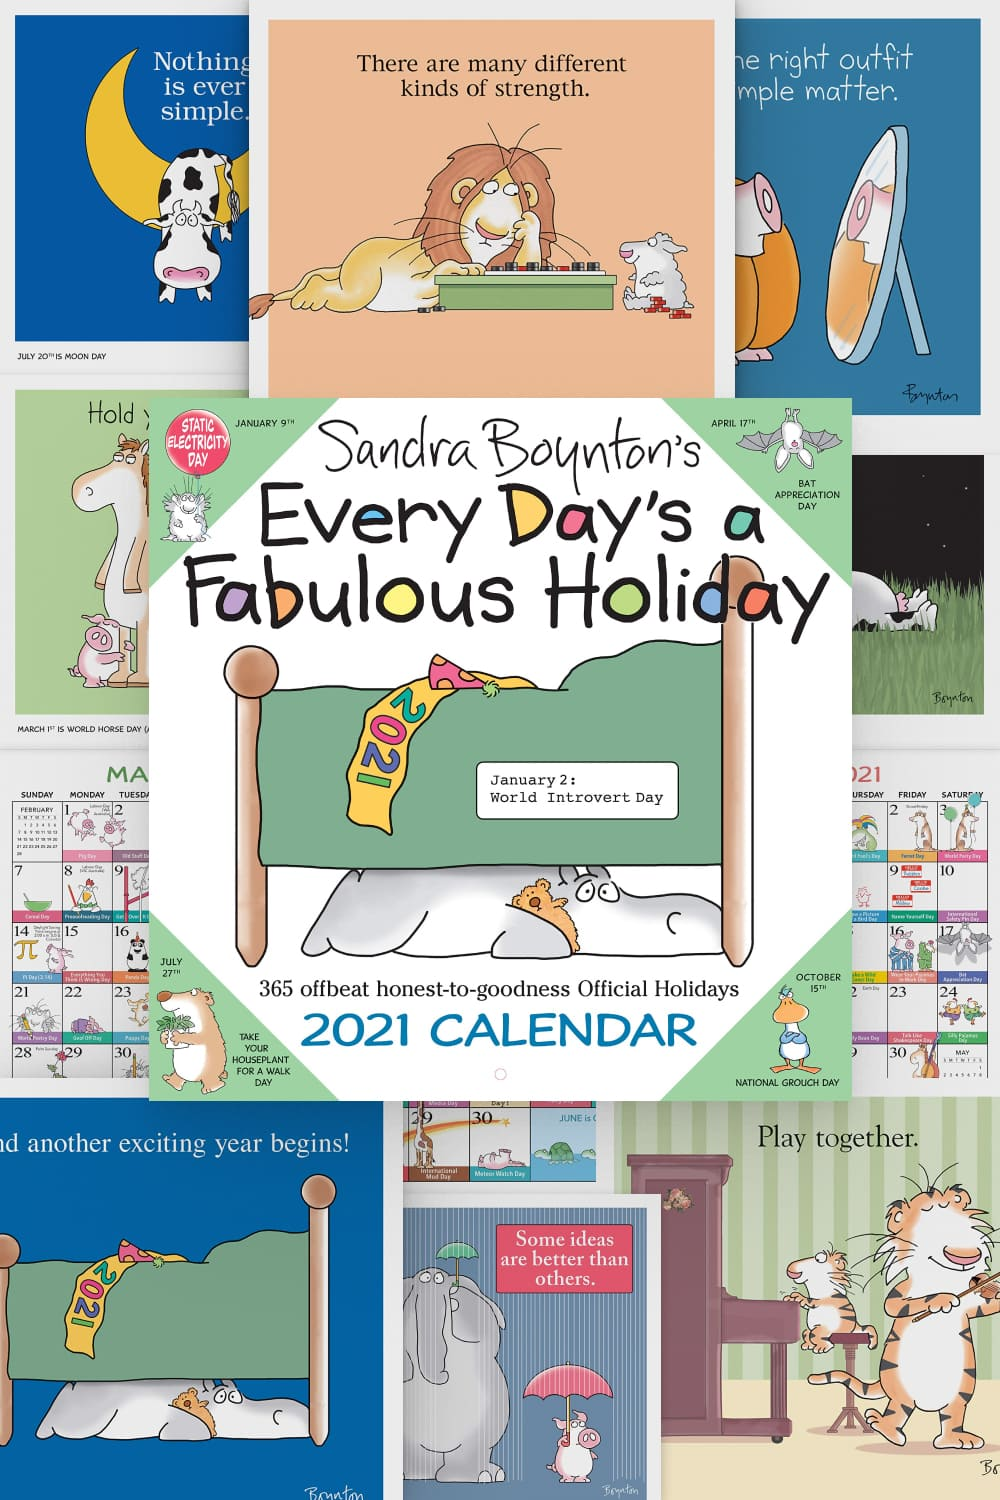 Every Day's a Fabulous Holiday combines two things people love: Sandra Boynton's humorous animal illustrations and holidays.